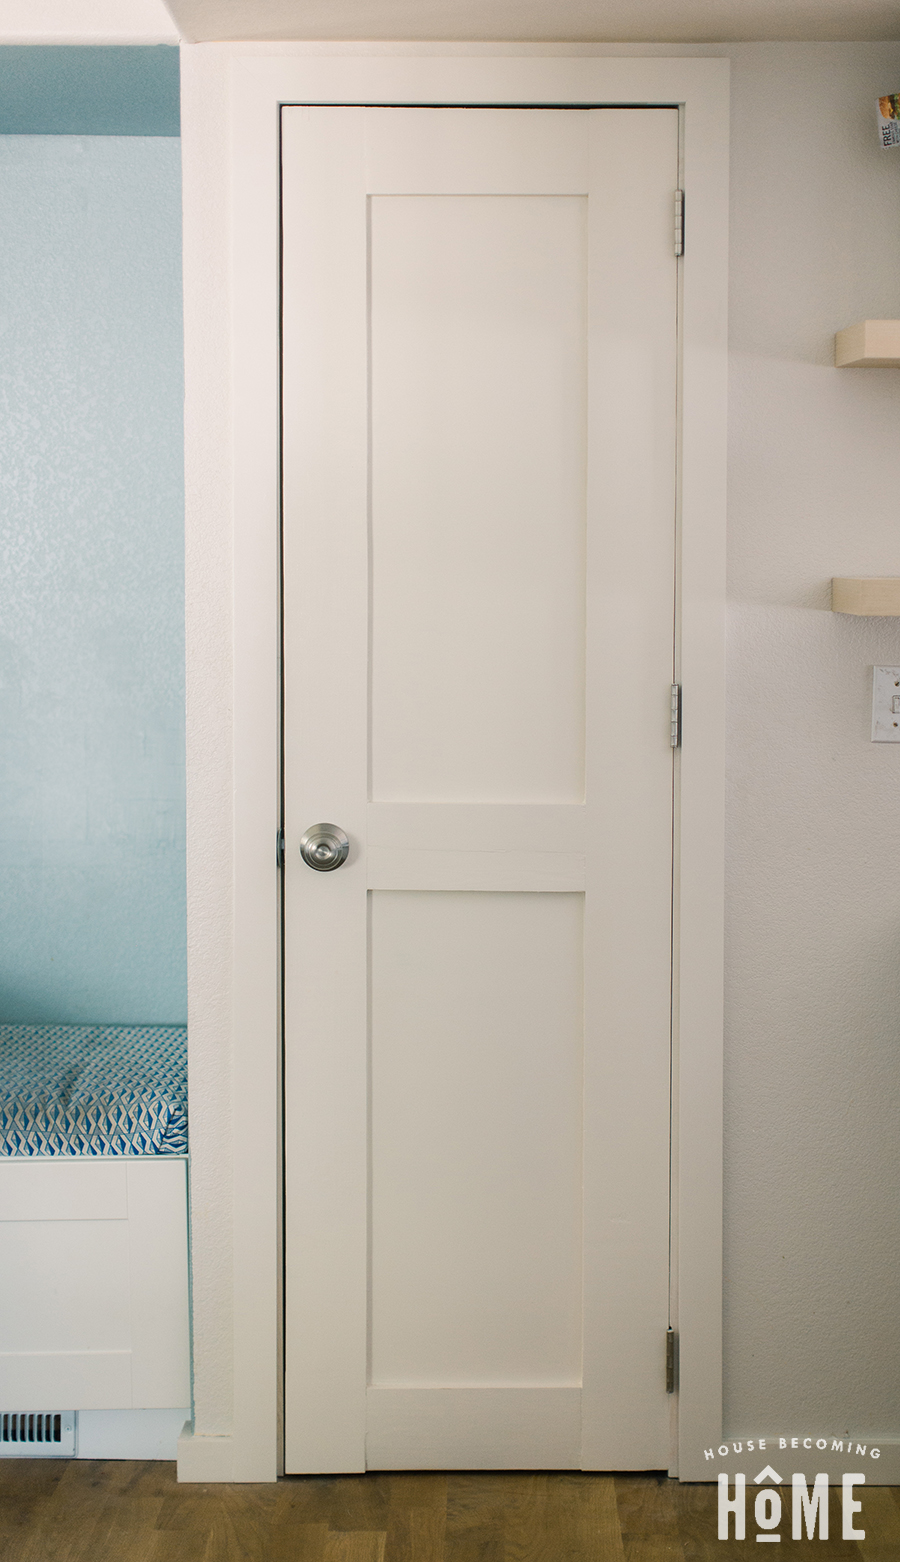 DIY Shaker Style Door Painted White Two Panel